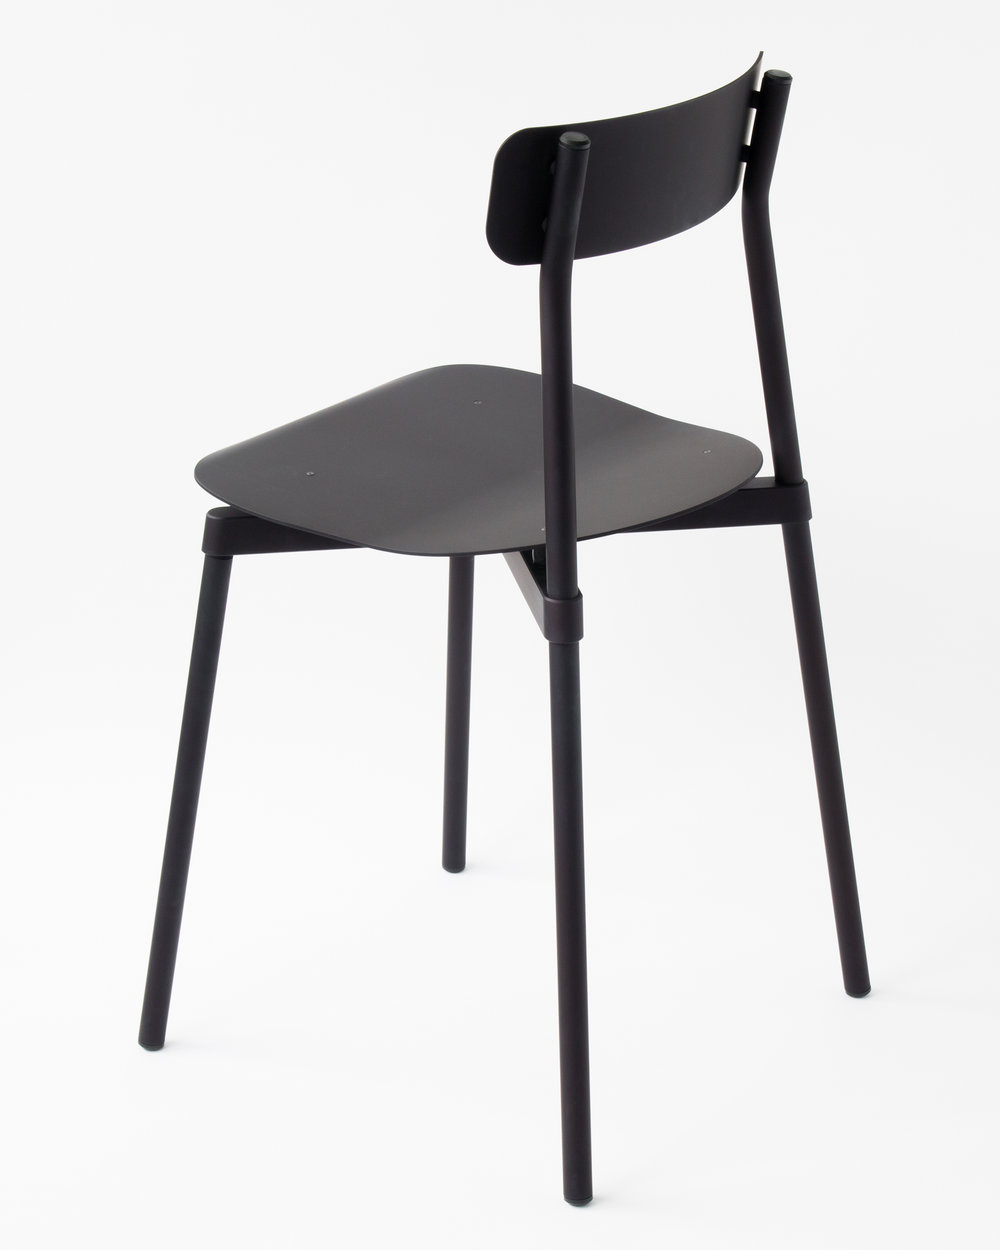 Fromme Chair designed by Tom Chung